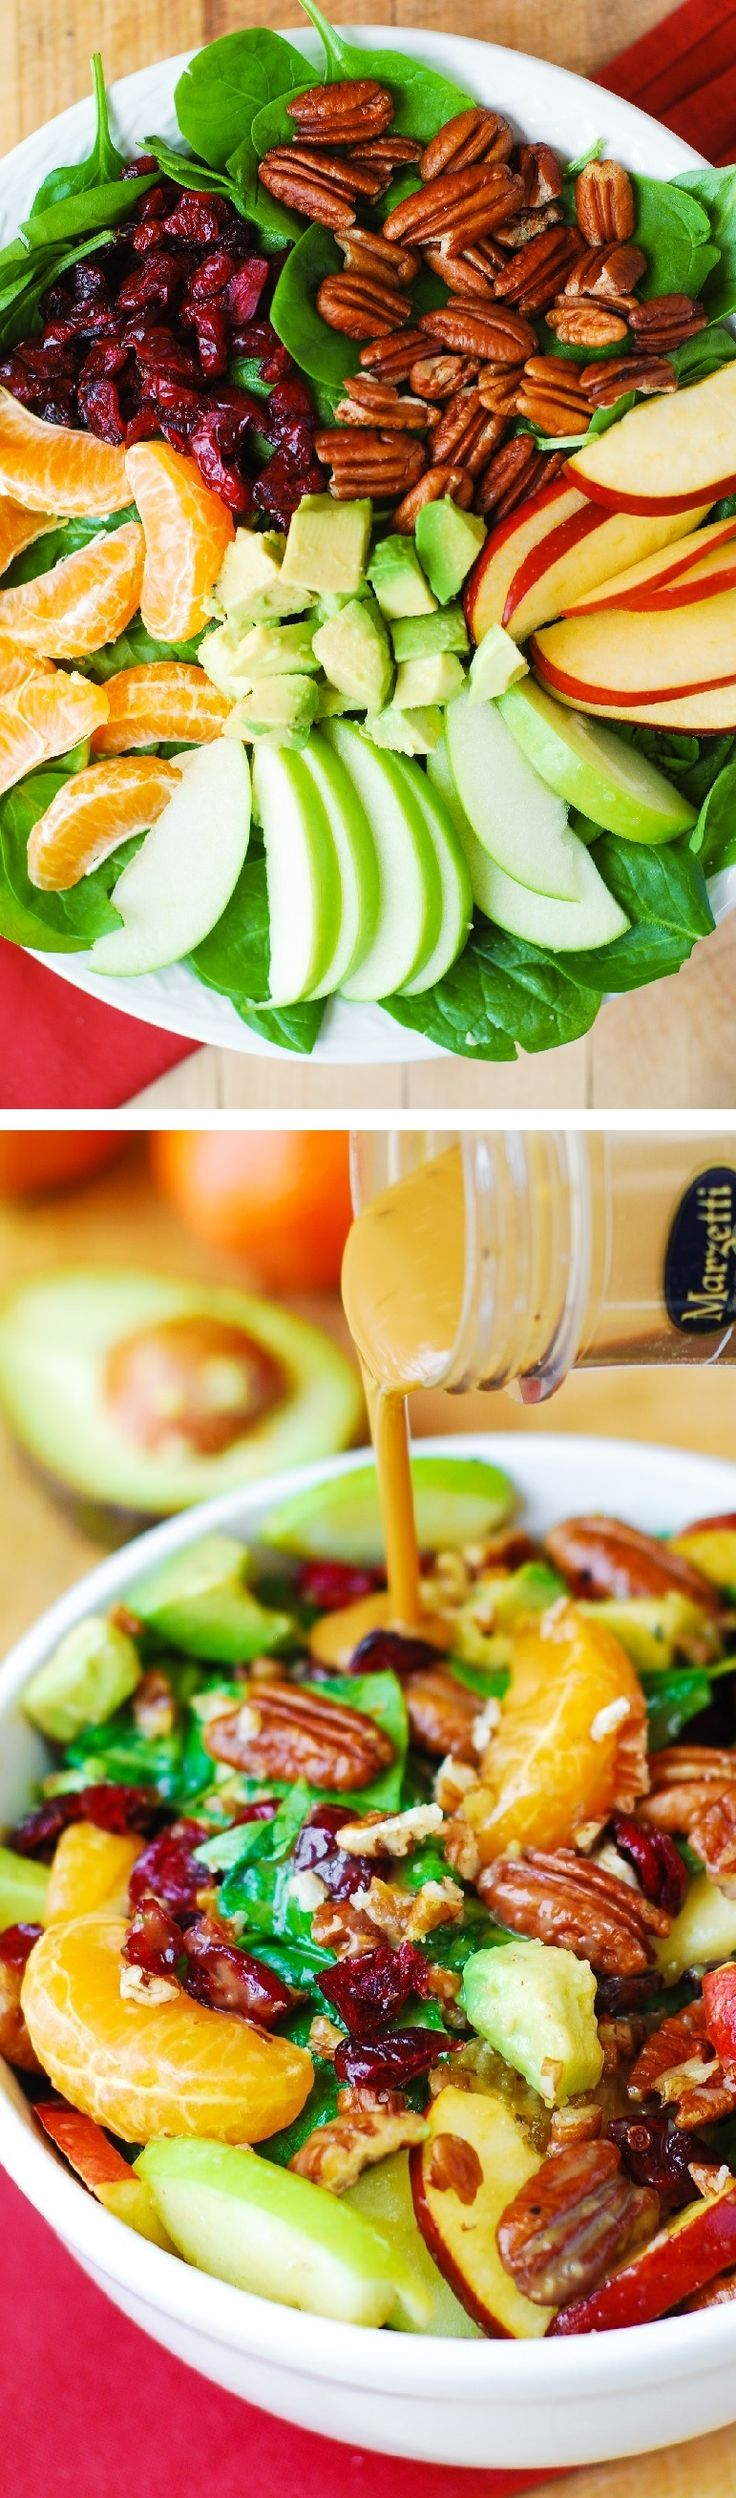 Apple Cranberry Spinach Salad with Pecans, Avocados – healthy, vegetarian, gluten free recipe.